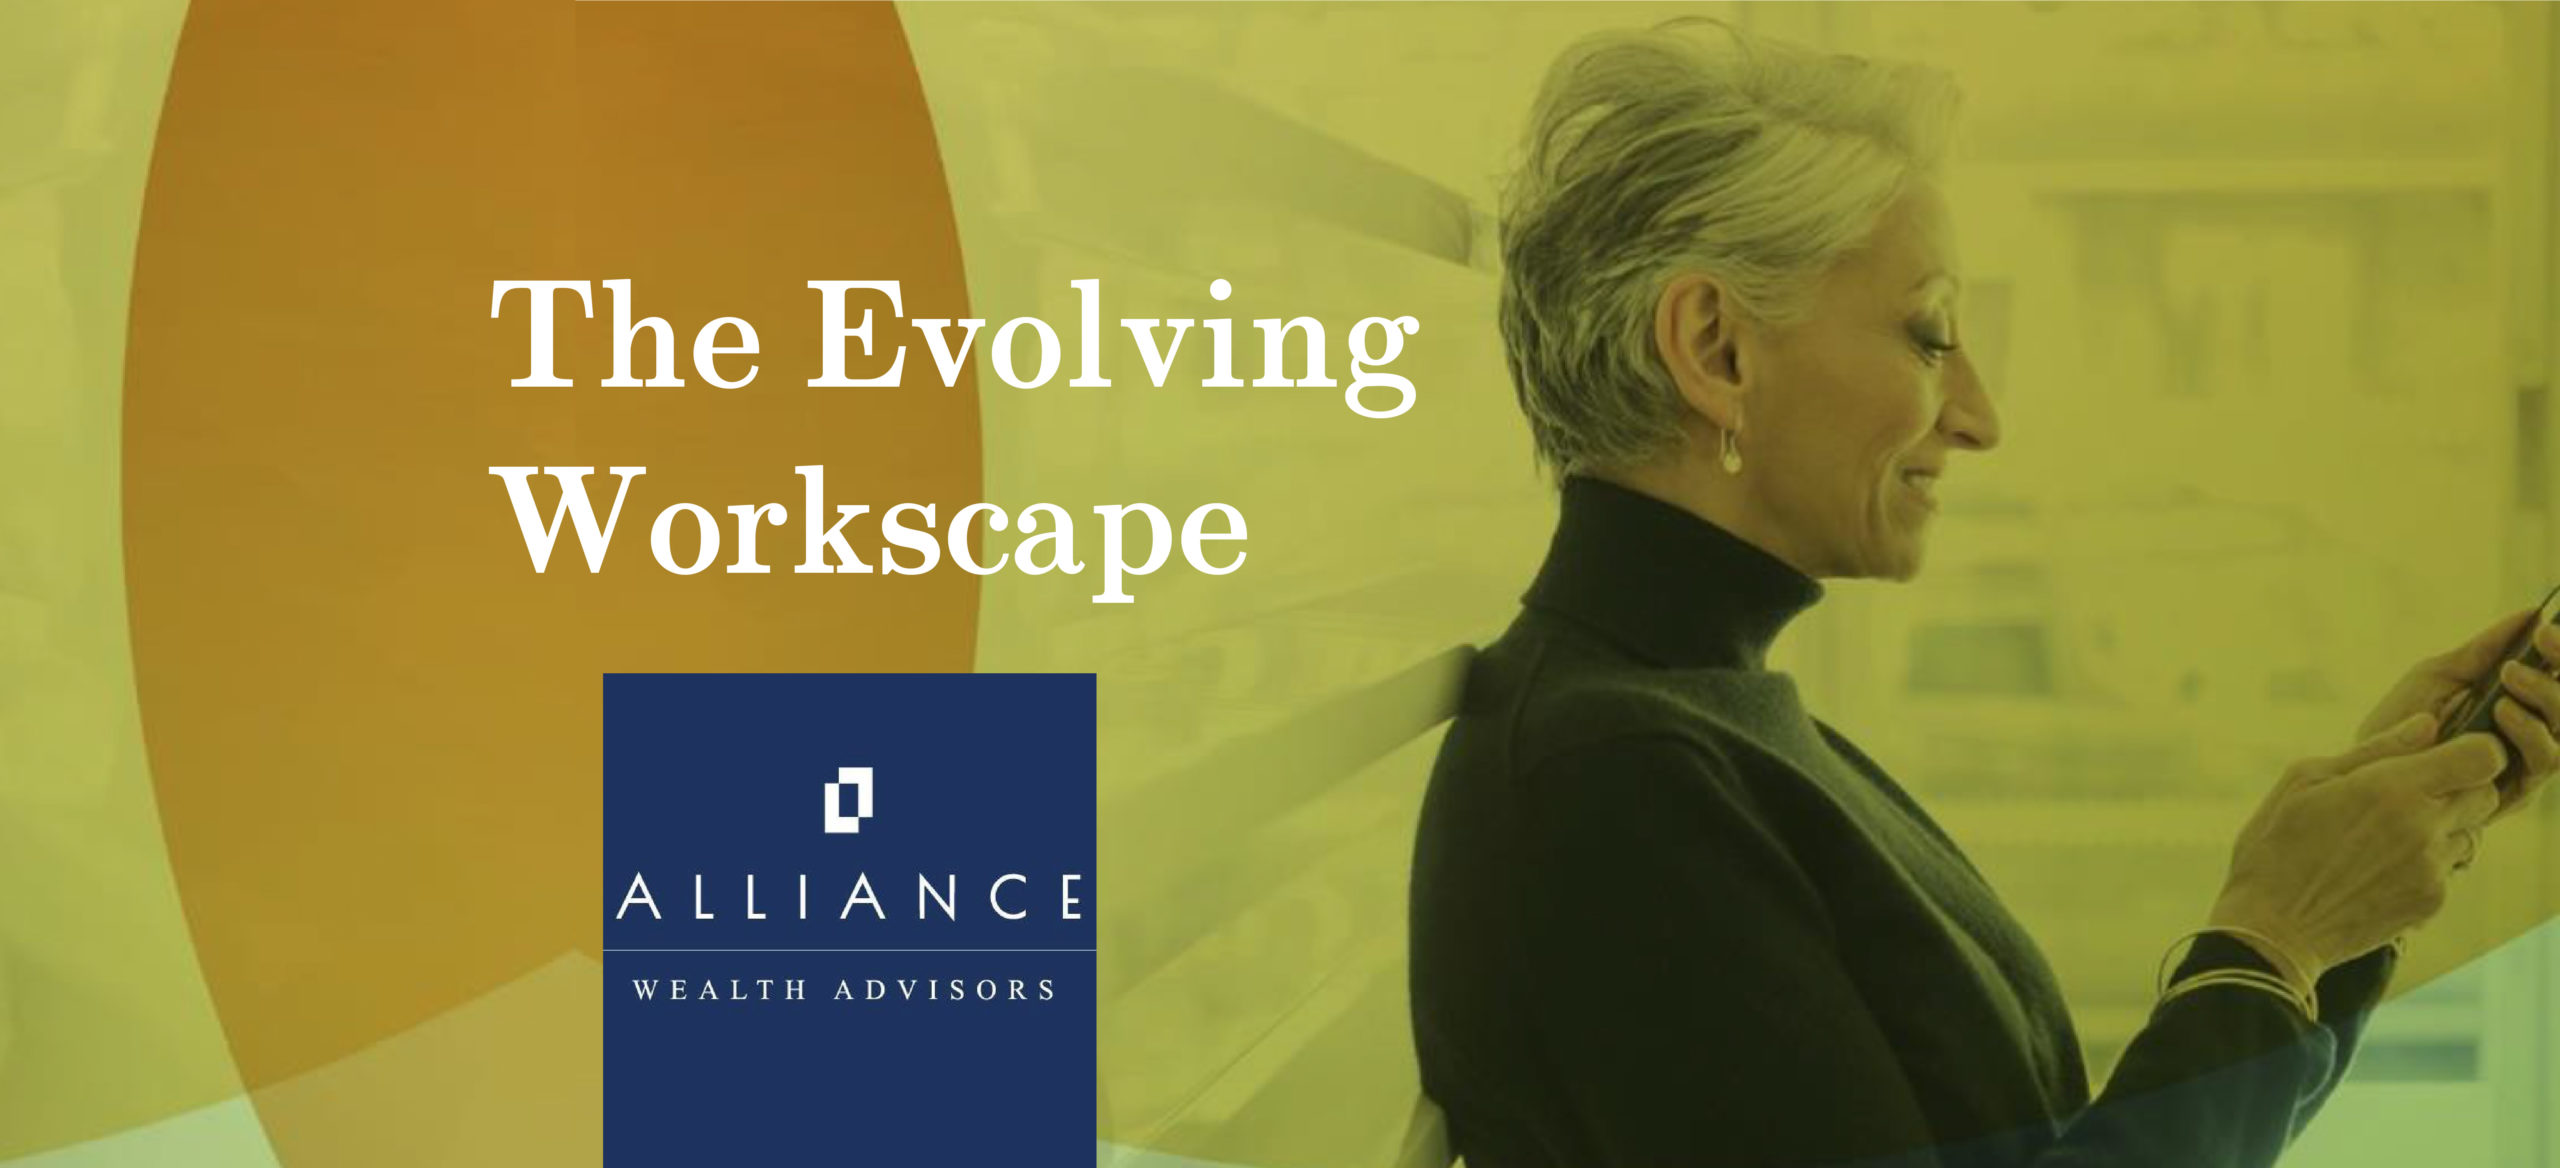 The Evolving Workscape with Alliance Wealth Advisors